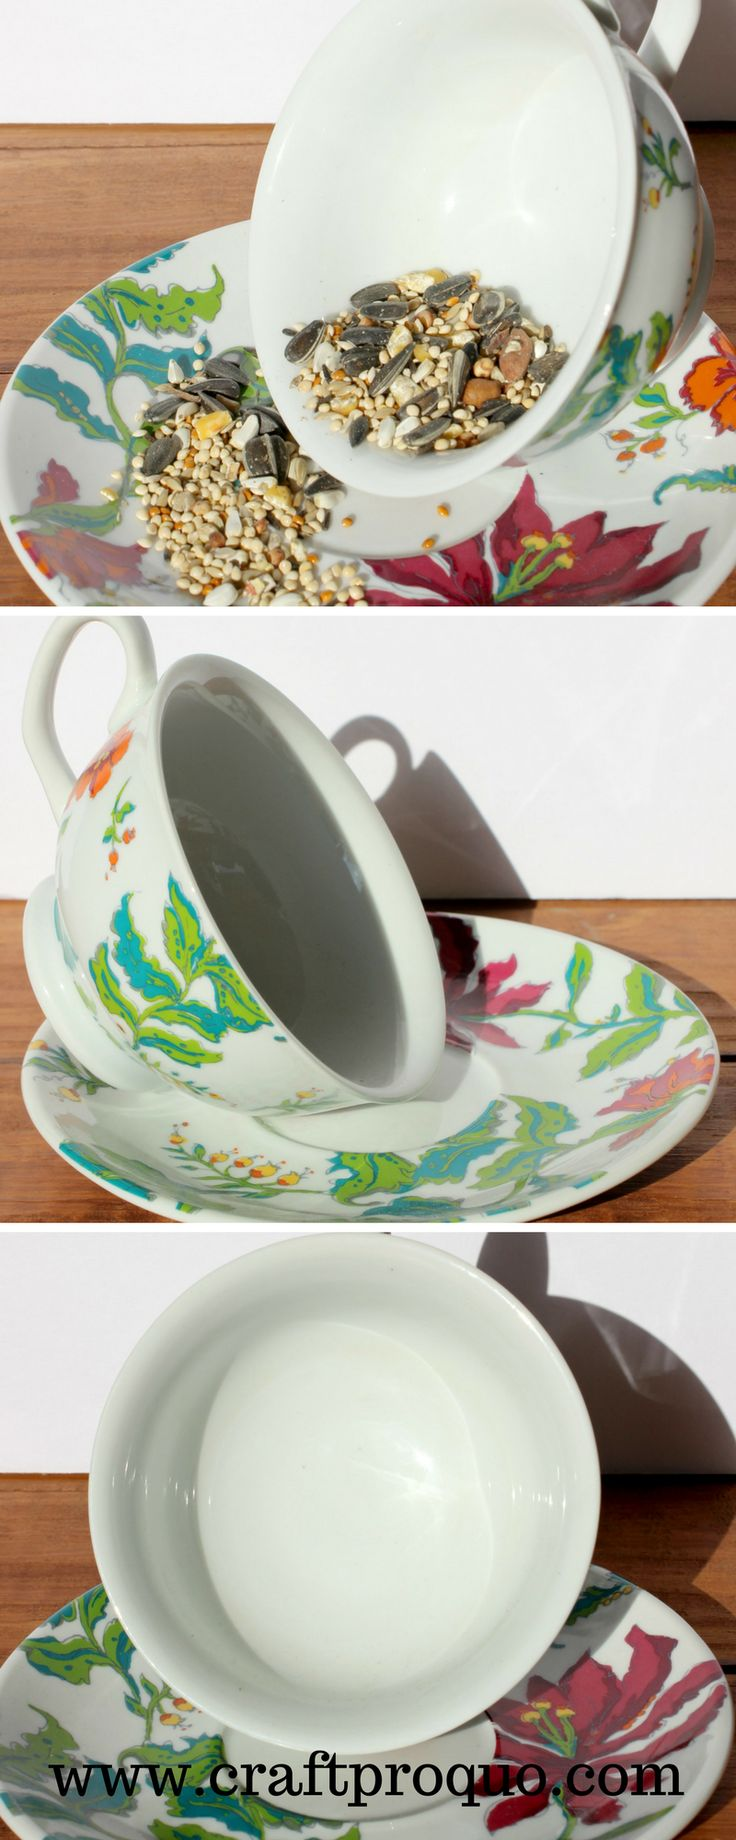 This patio decor has been repurposed from a ceramic floral teacup and saucer. It will attract attention from birds and humans alike. Shop now at www.craftproquo.etsy.com. #gardendecor #upcycled #birdfeeding